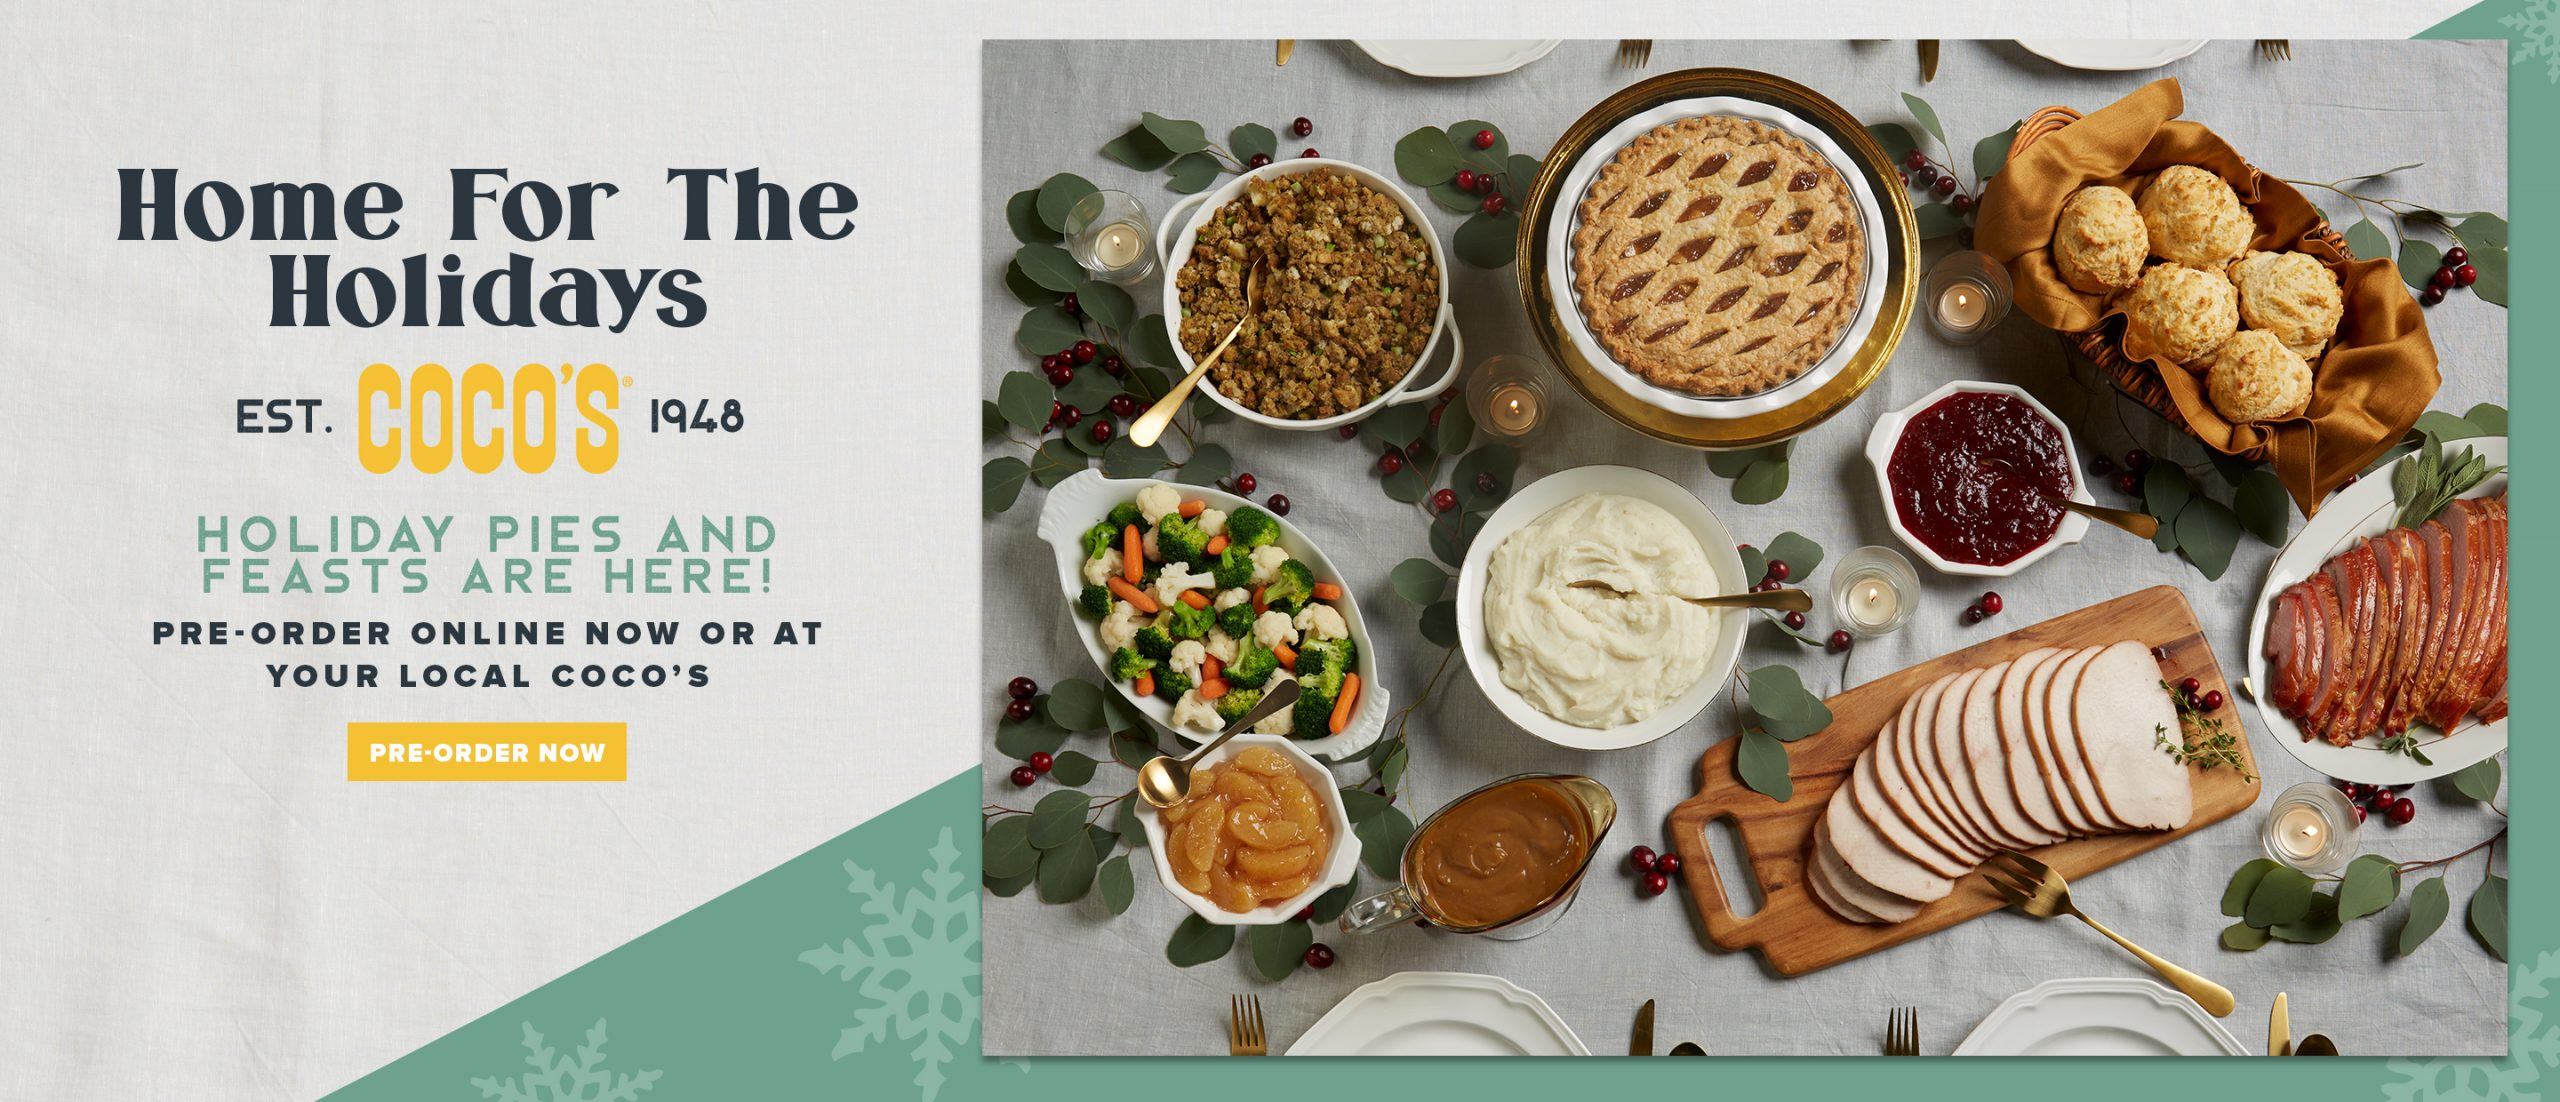 Home for the Holidays! Holiday pies and feasts are here, pre-order yours today!